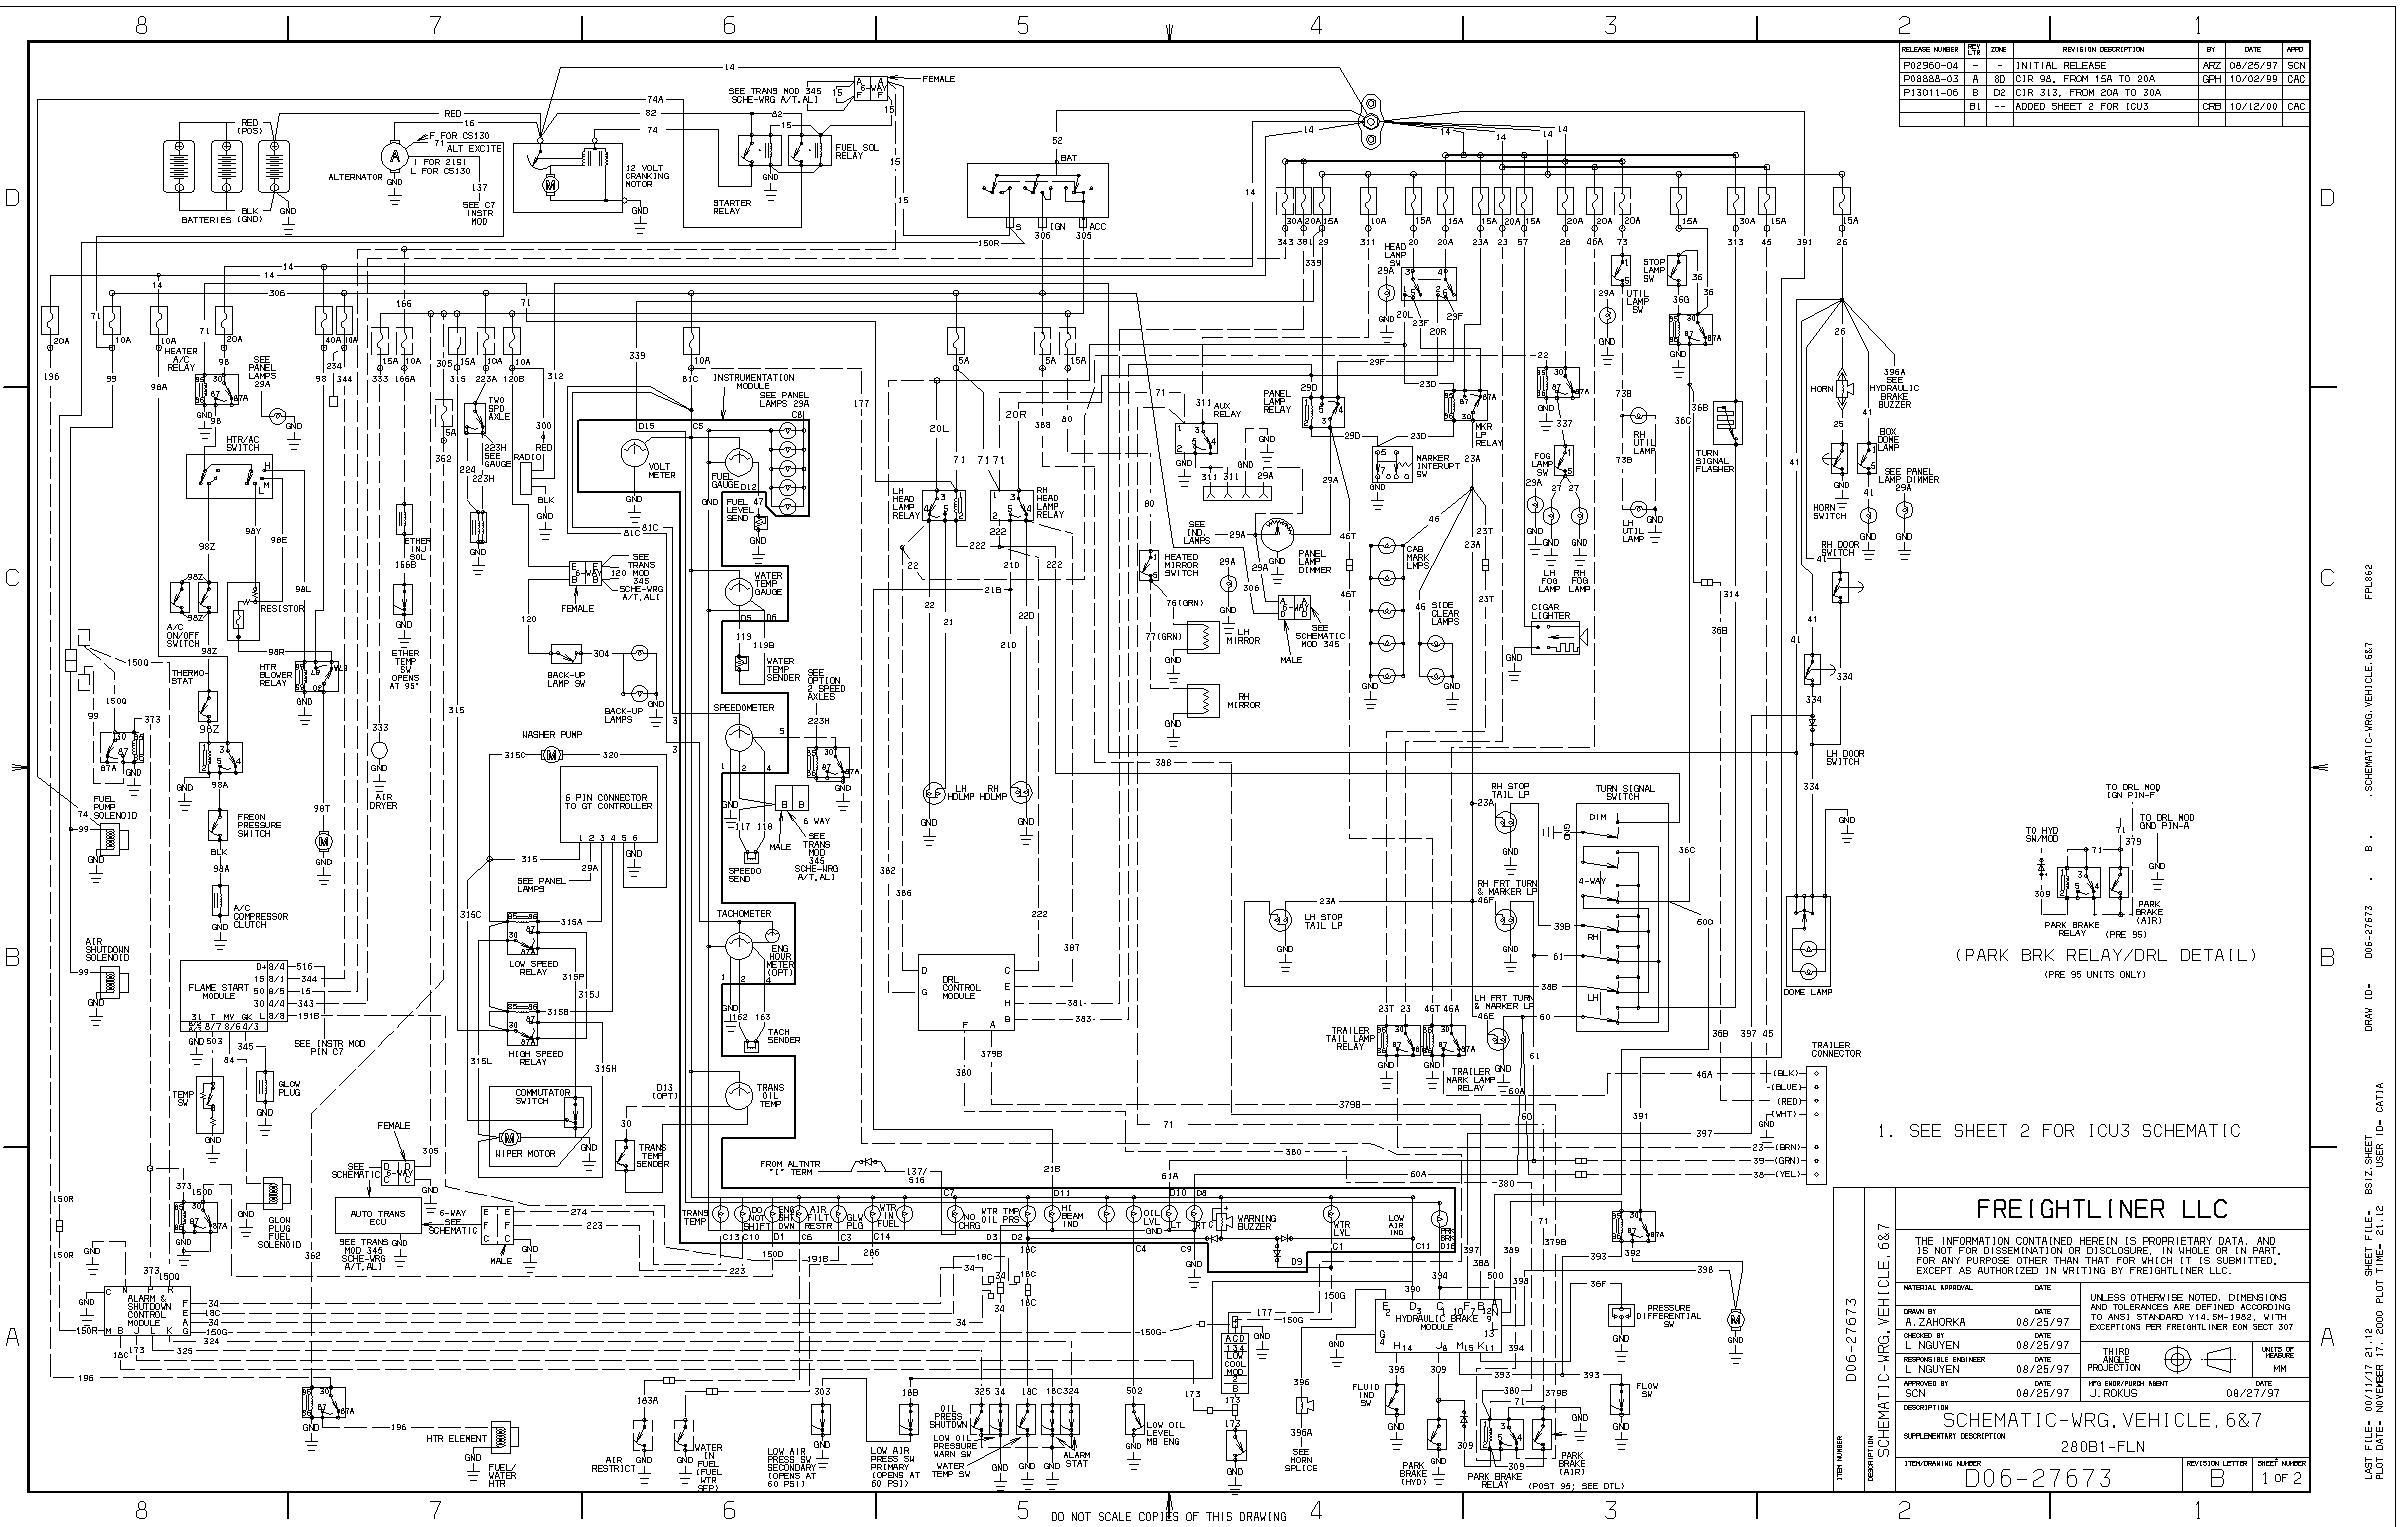 astonishing freightliner wiring diagrams free 51 in and chassis diagram |  sterling trucks, freightliner, toyota camry  pinterest